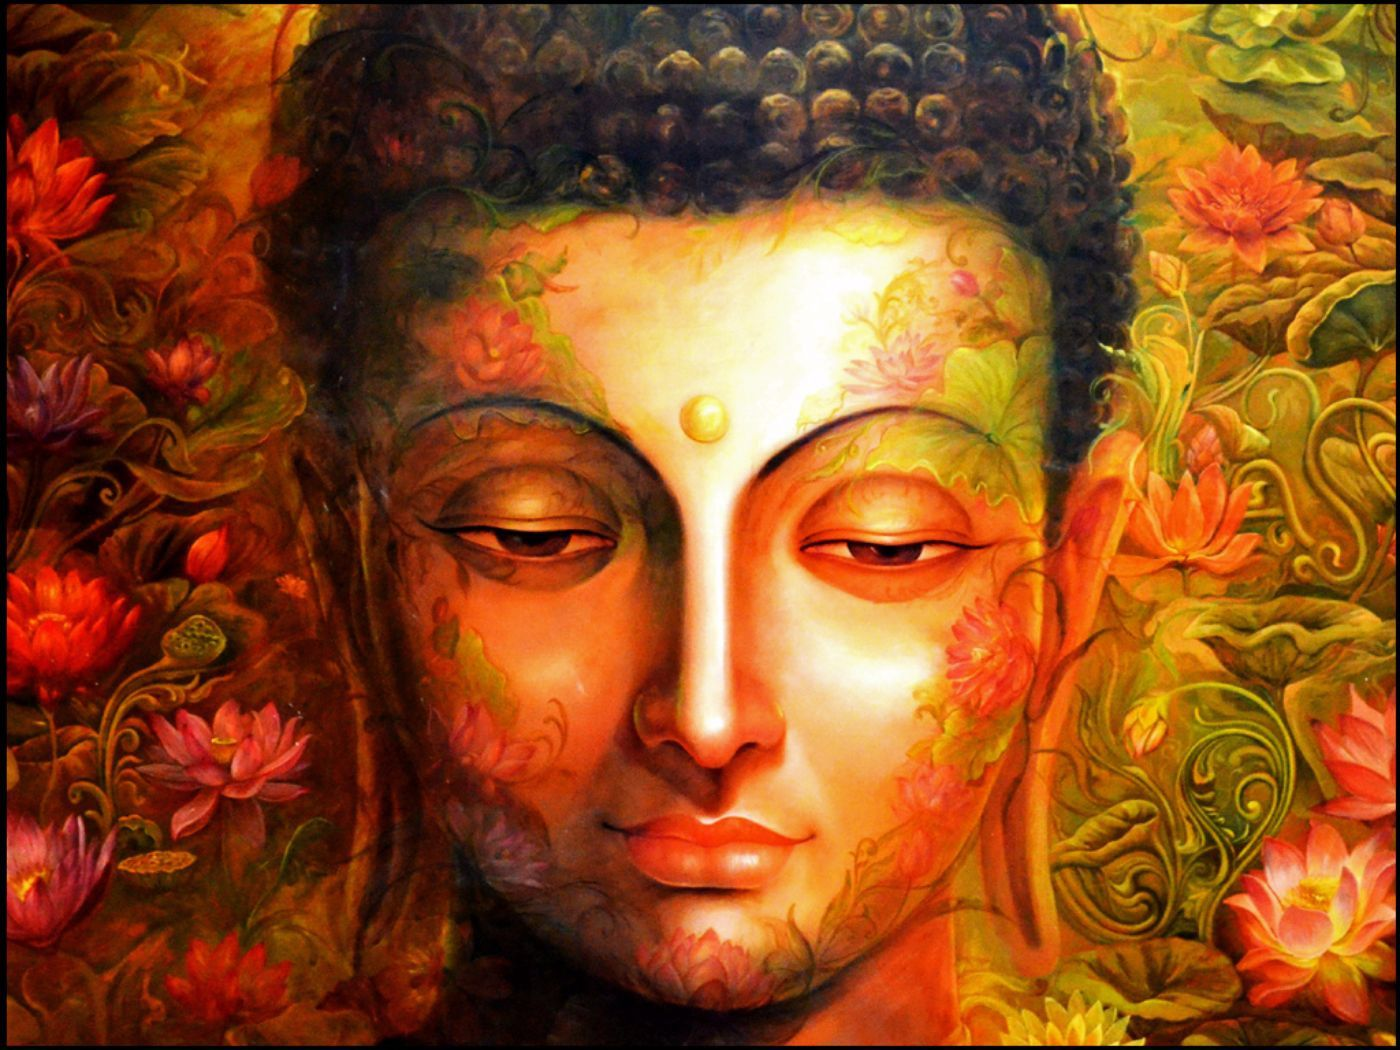 Buy art prints of this amazing Buddha painting/photogaph on Tallenge Store. Available as posters, digital prints, canvas prints, canvas wraps and more. Best Prices. Free shipping. Cash on Delivery.